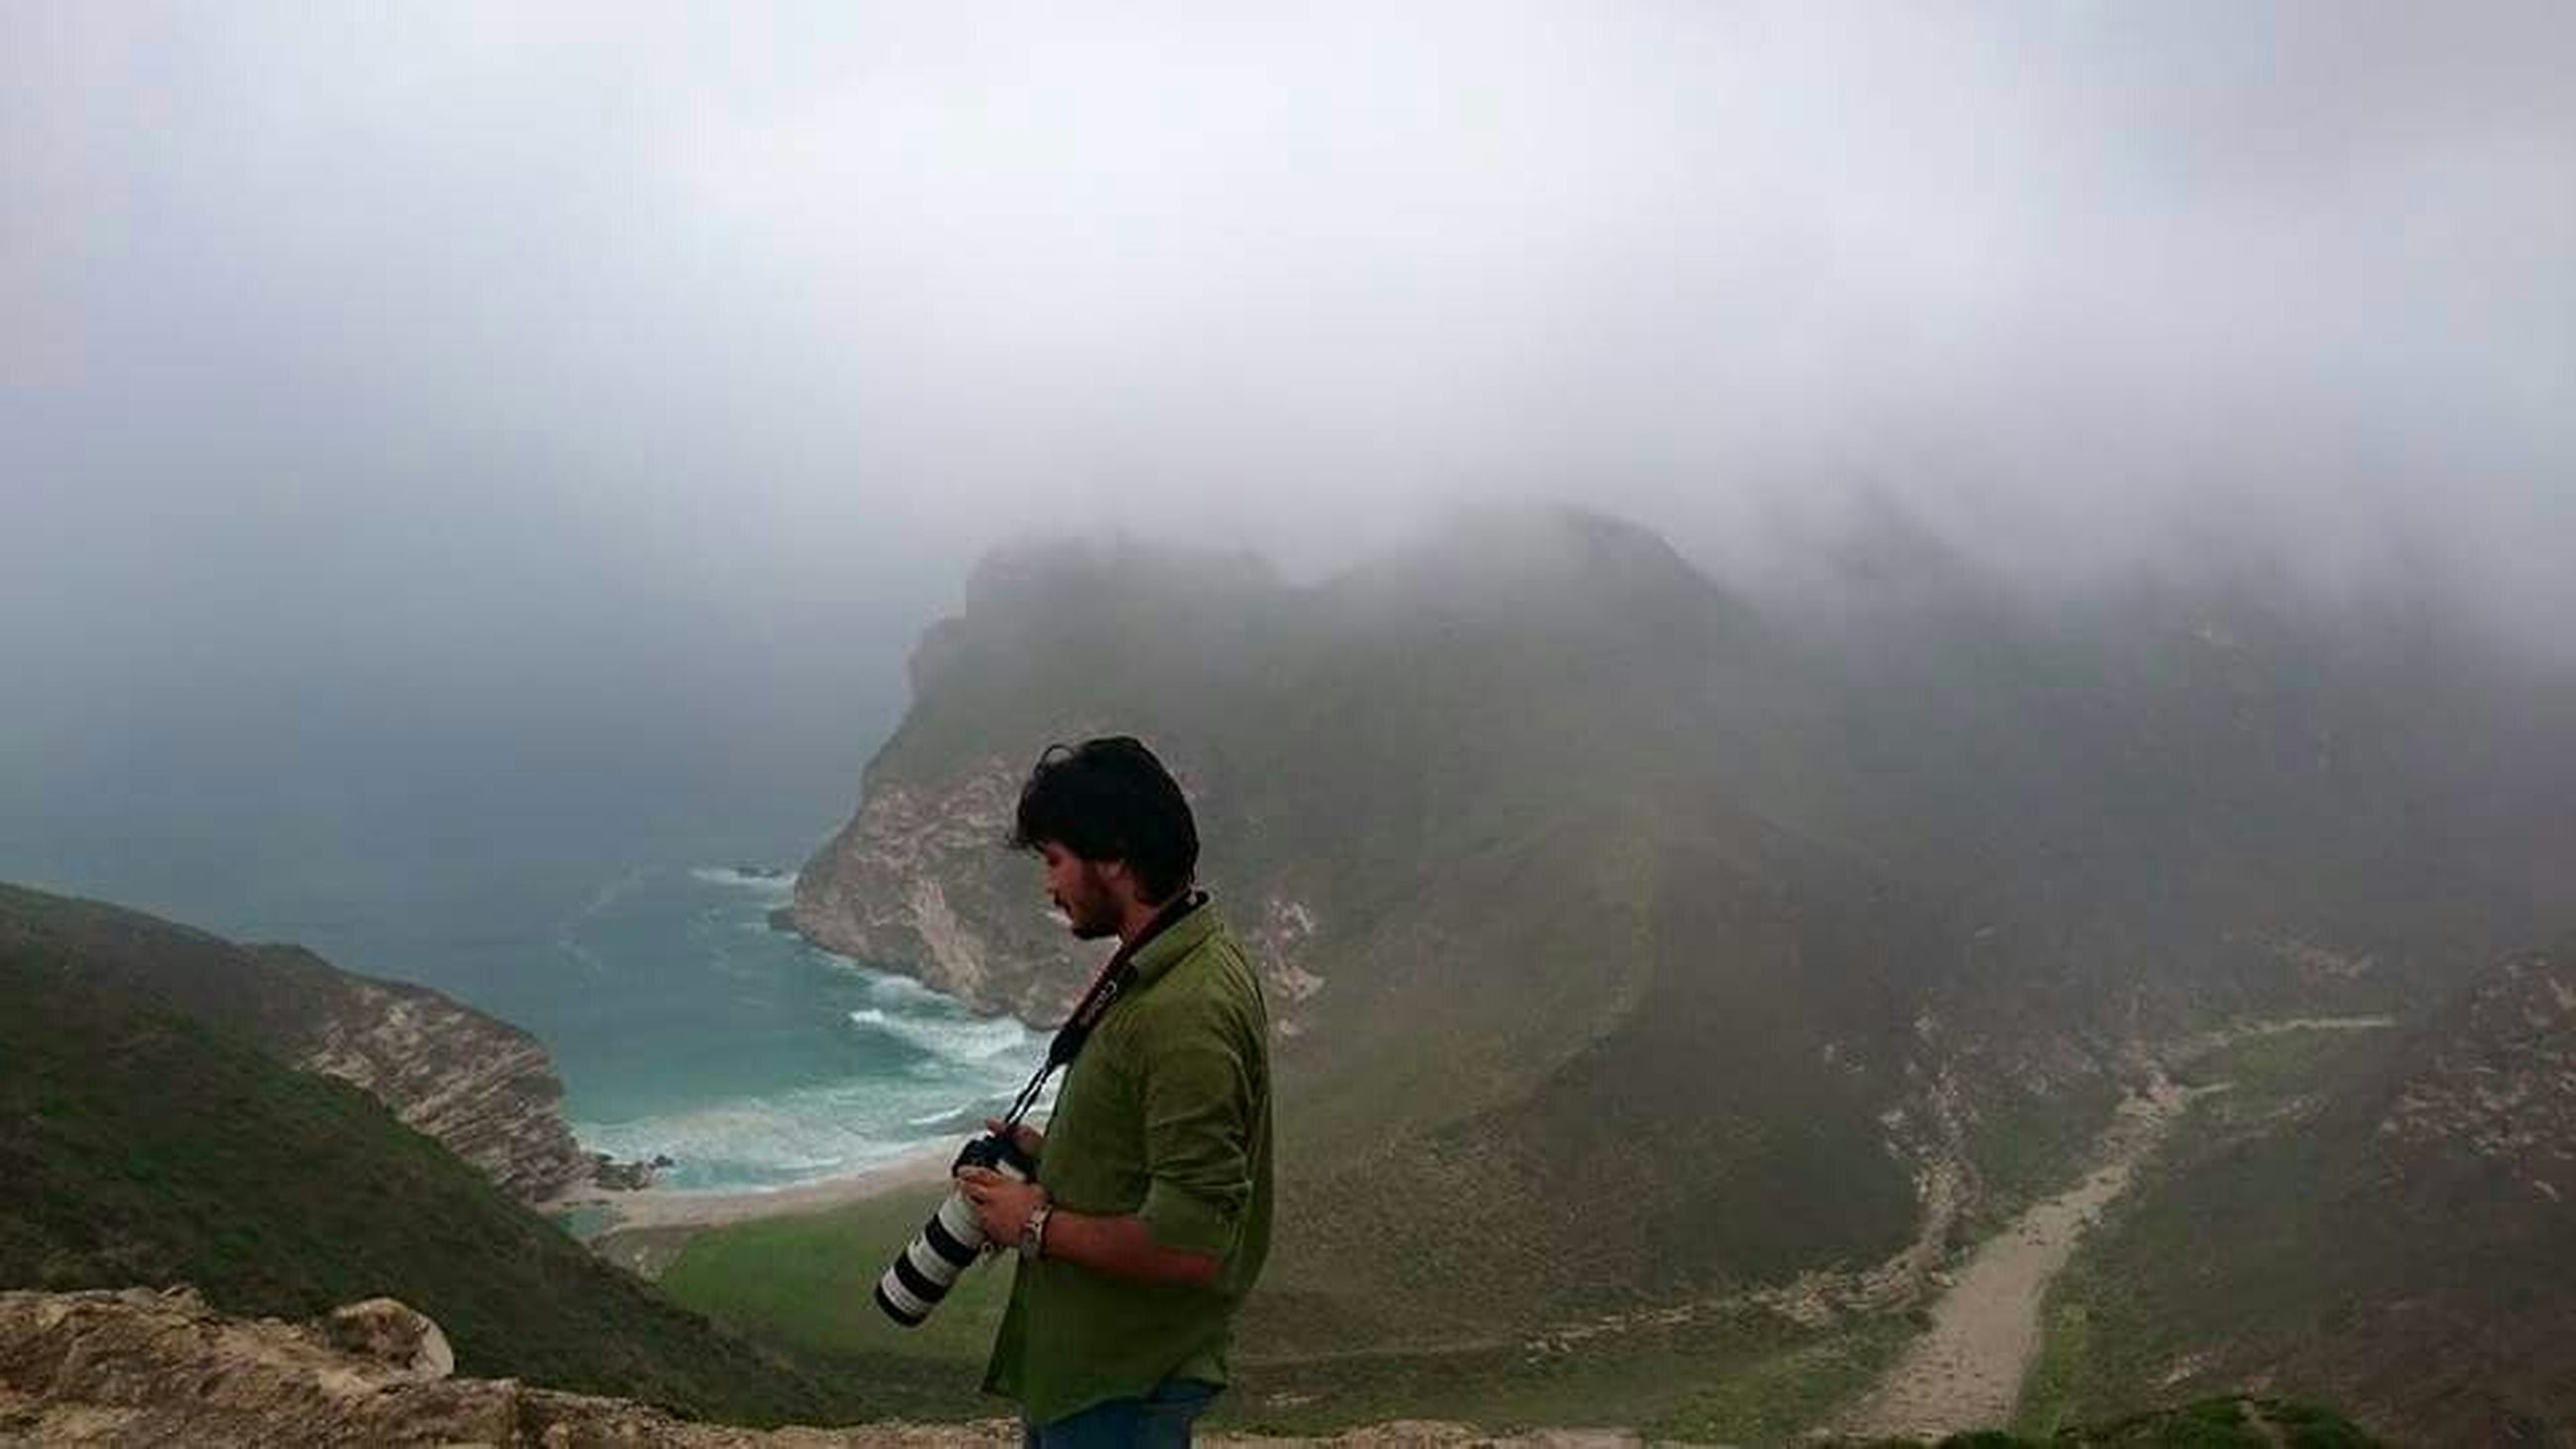 lifestyles, leisure activity, fog, young adult, mountain, casual clothing, full length, foggy, young men, beauty in nature, nature, scenics, rear view, standing, tranquility, men, person, vacations